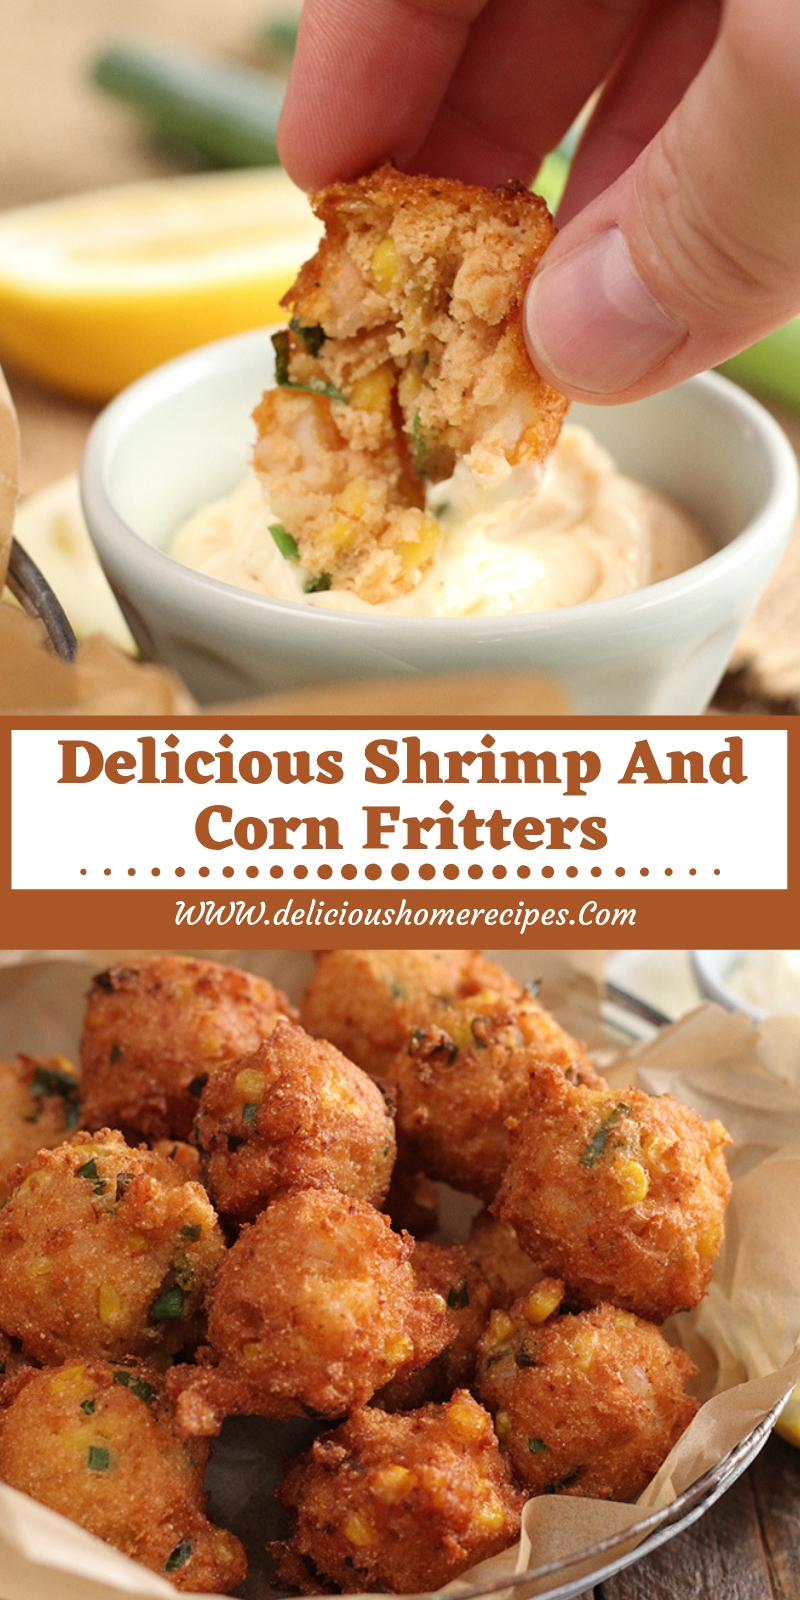 Delicious Shrimp and Corn Fritters